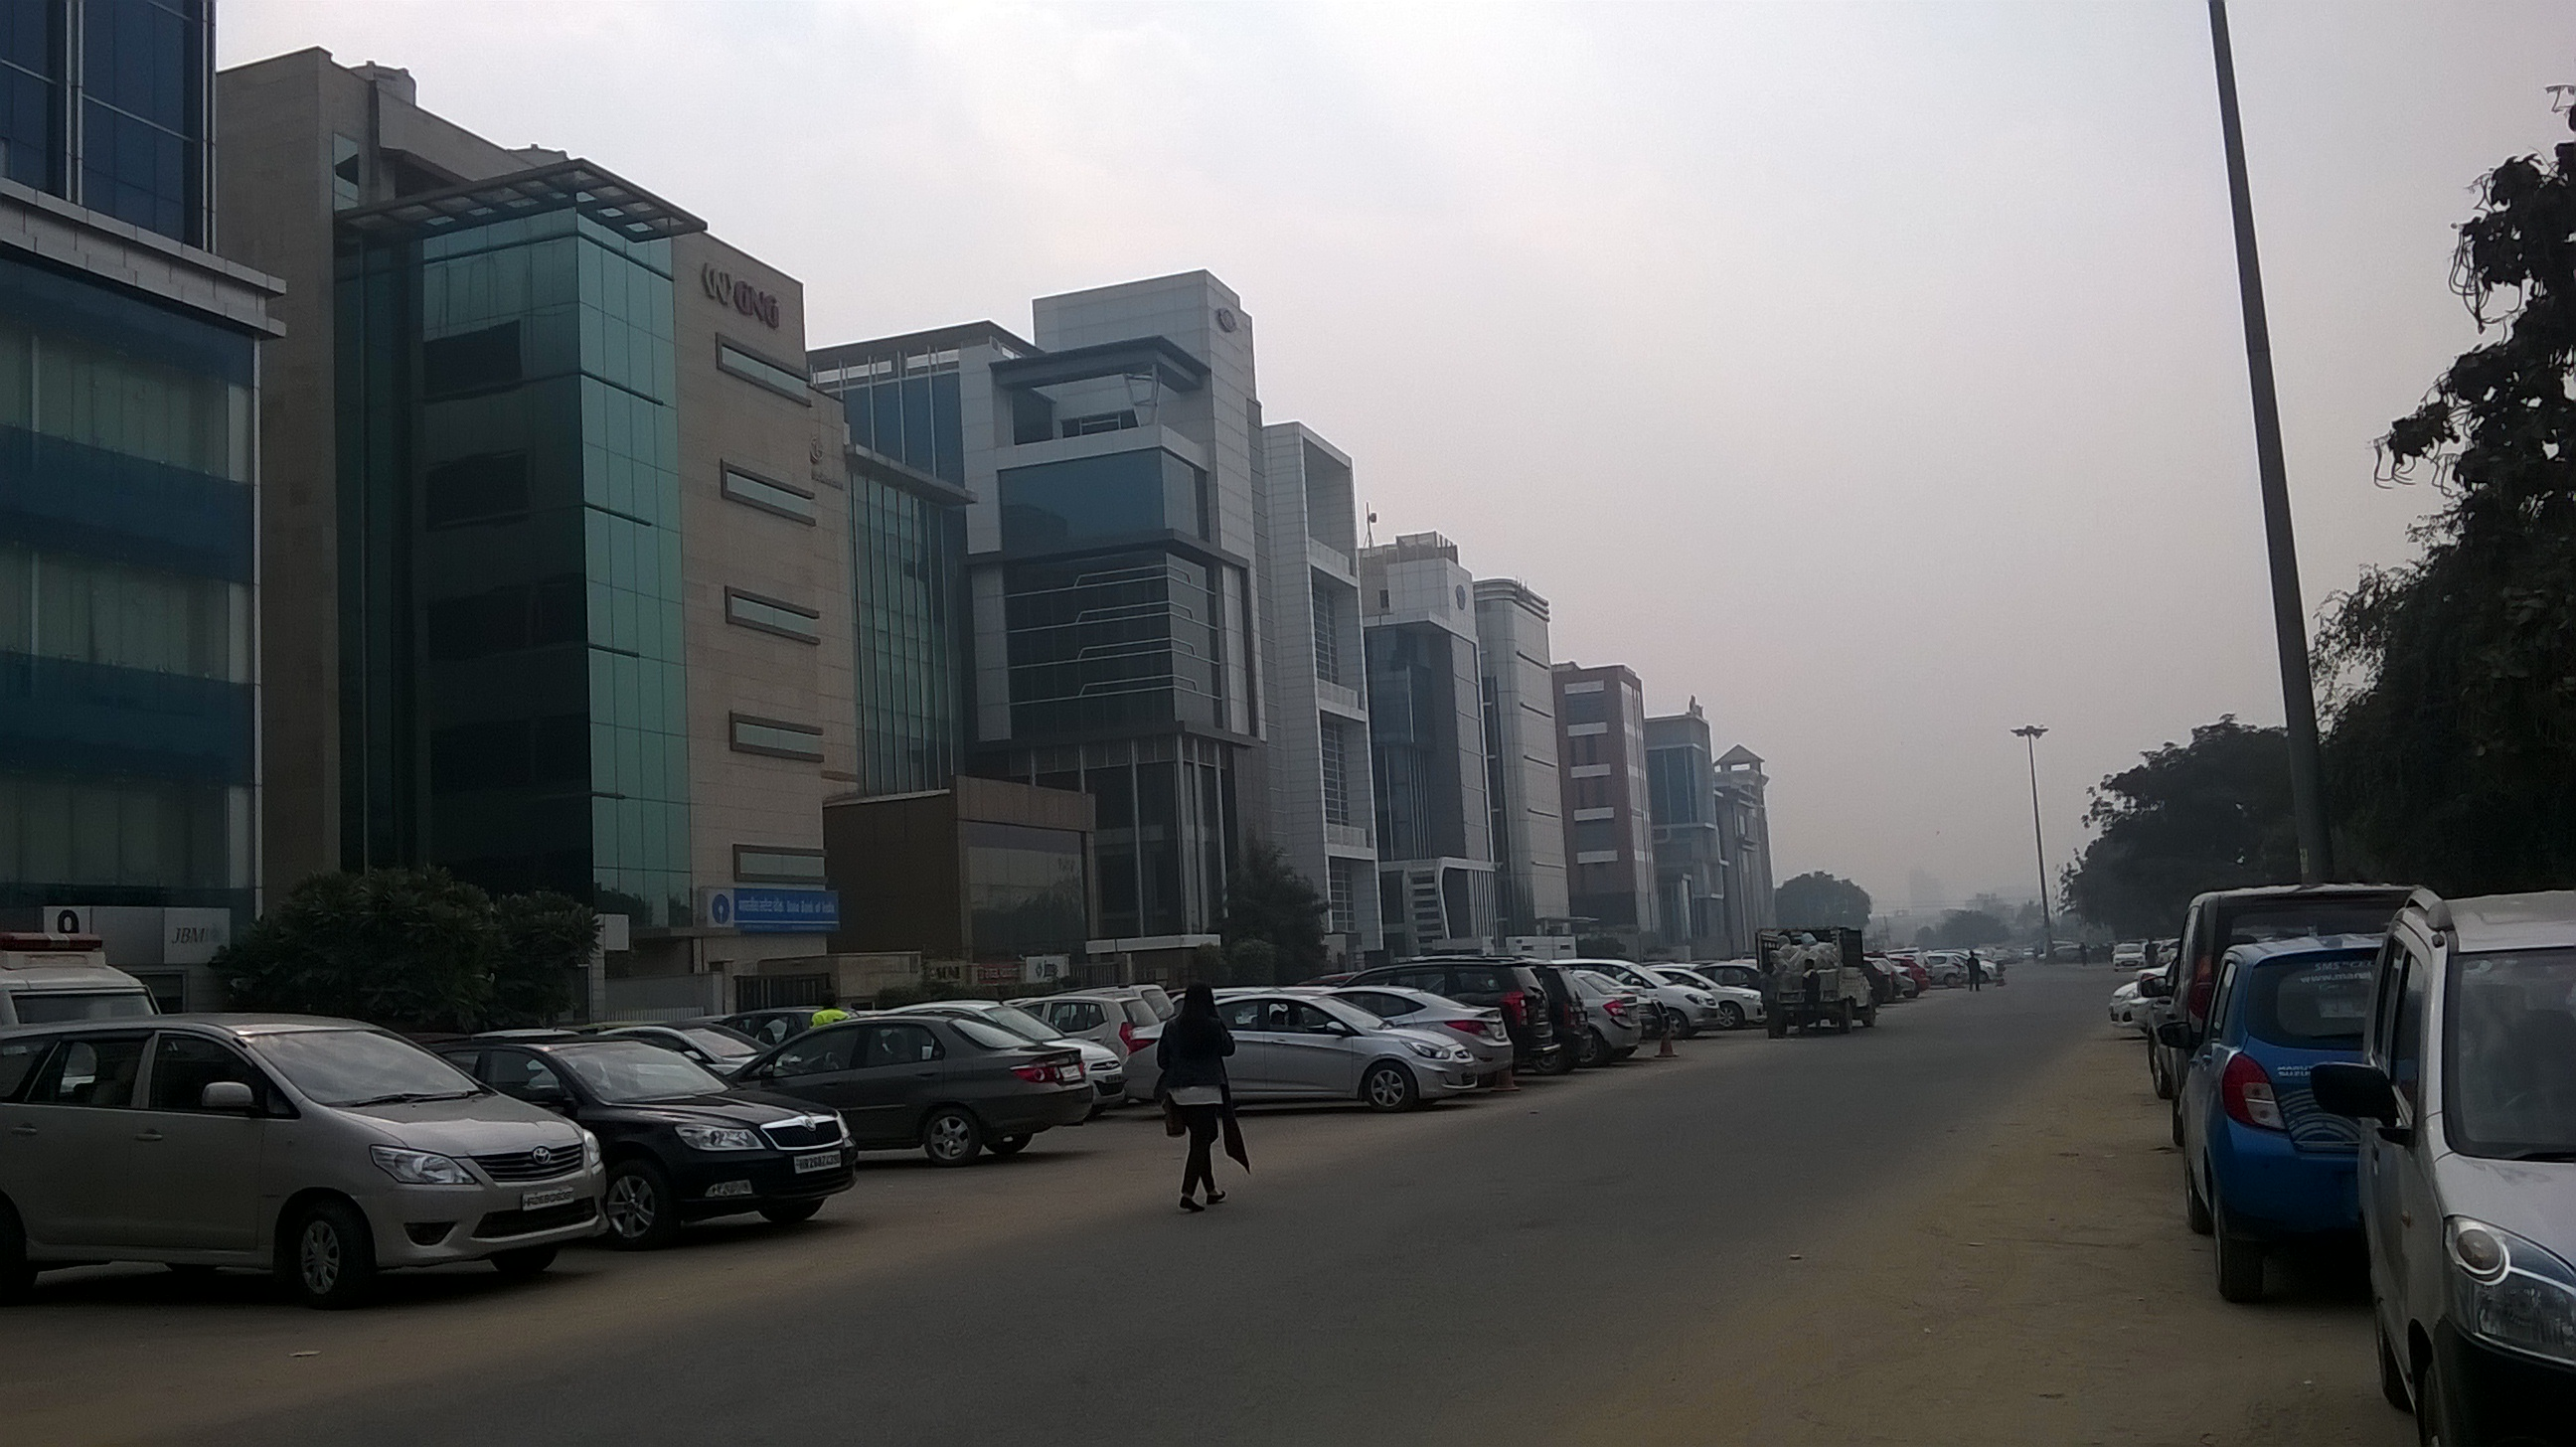 Commercial center Sector 43 Gurgaon